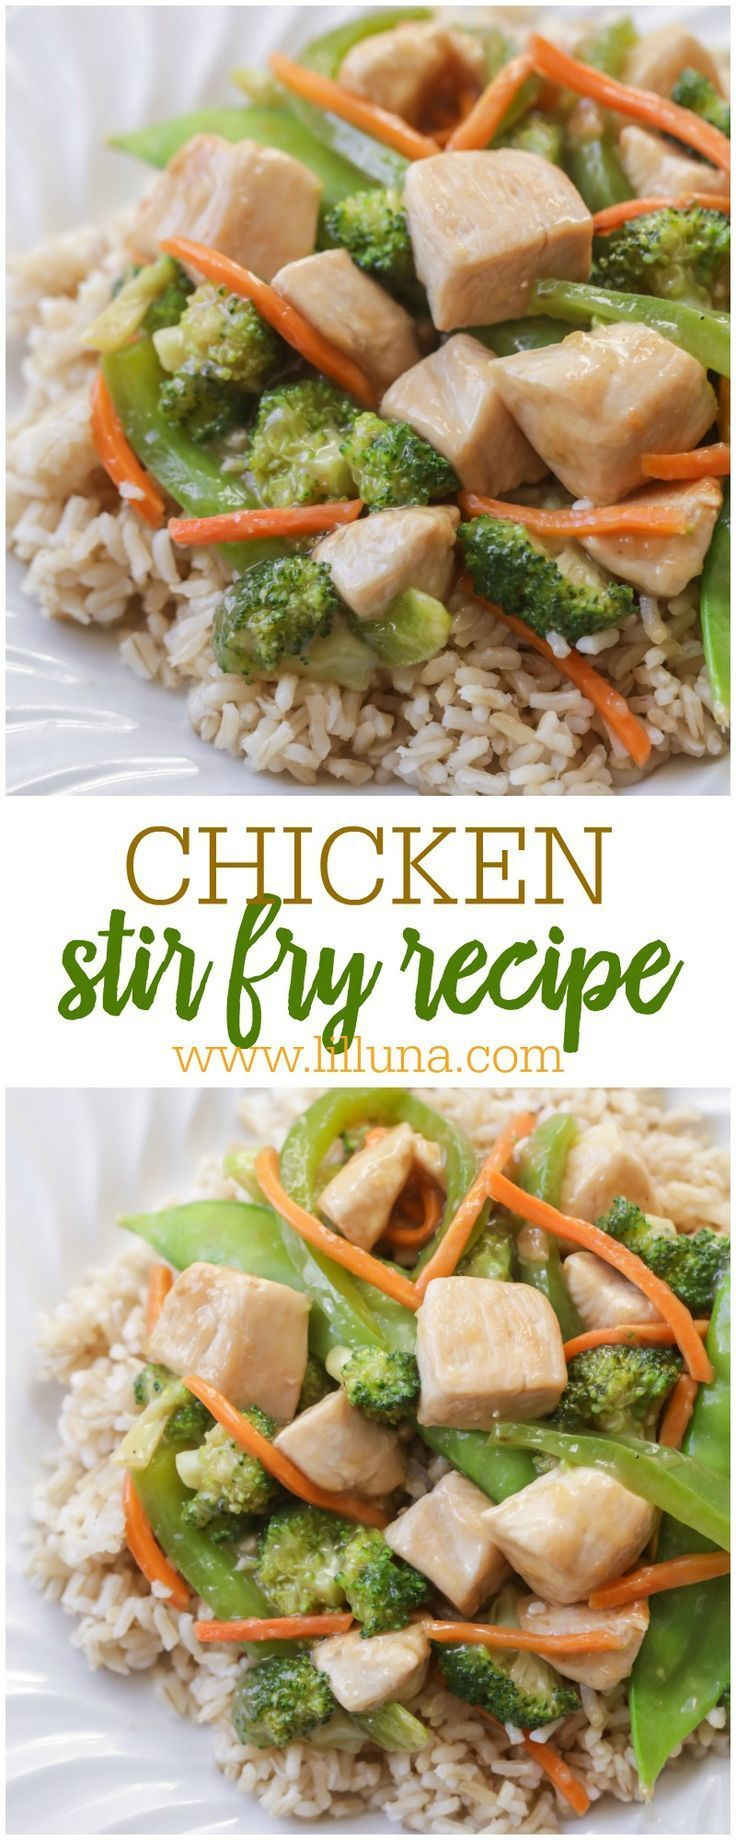 Chicken Stir Fry Recipe Yum Yum Chicken Easy Chicken Stir Fry Chicken Stir Fry